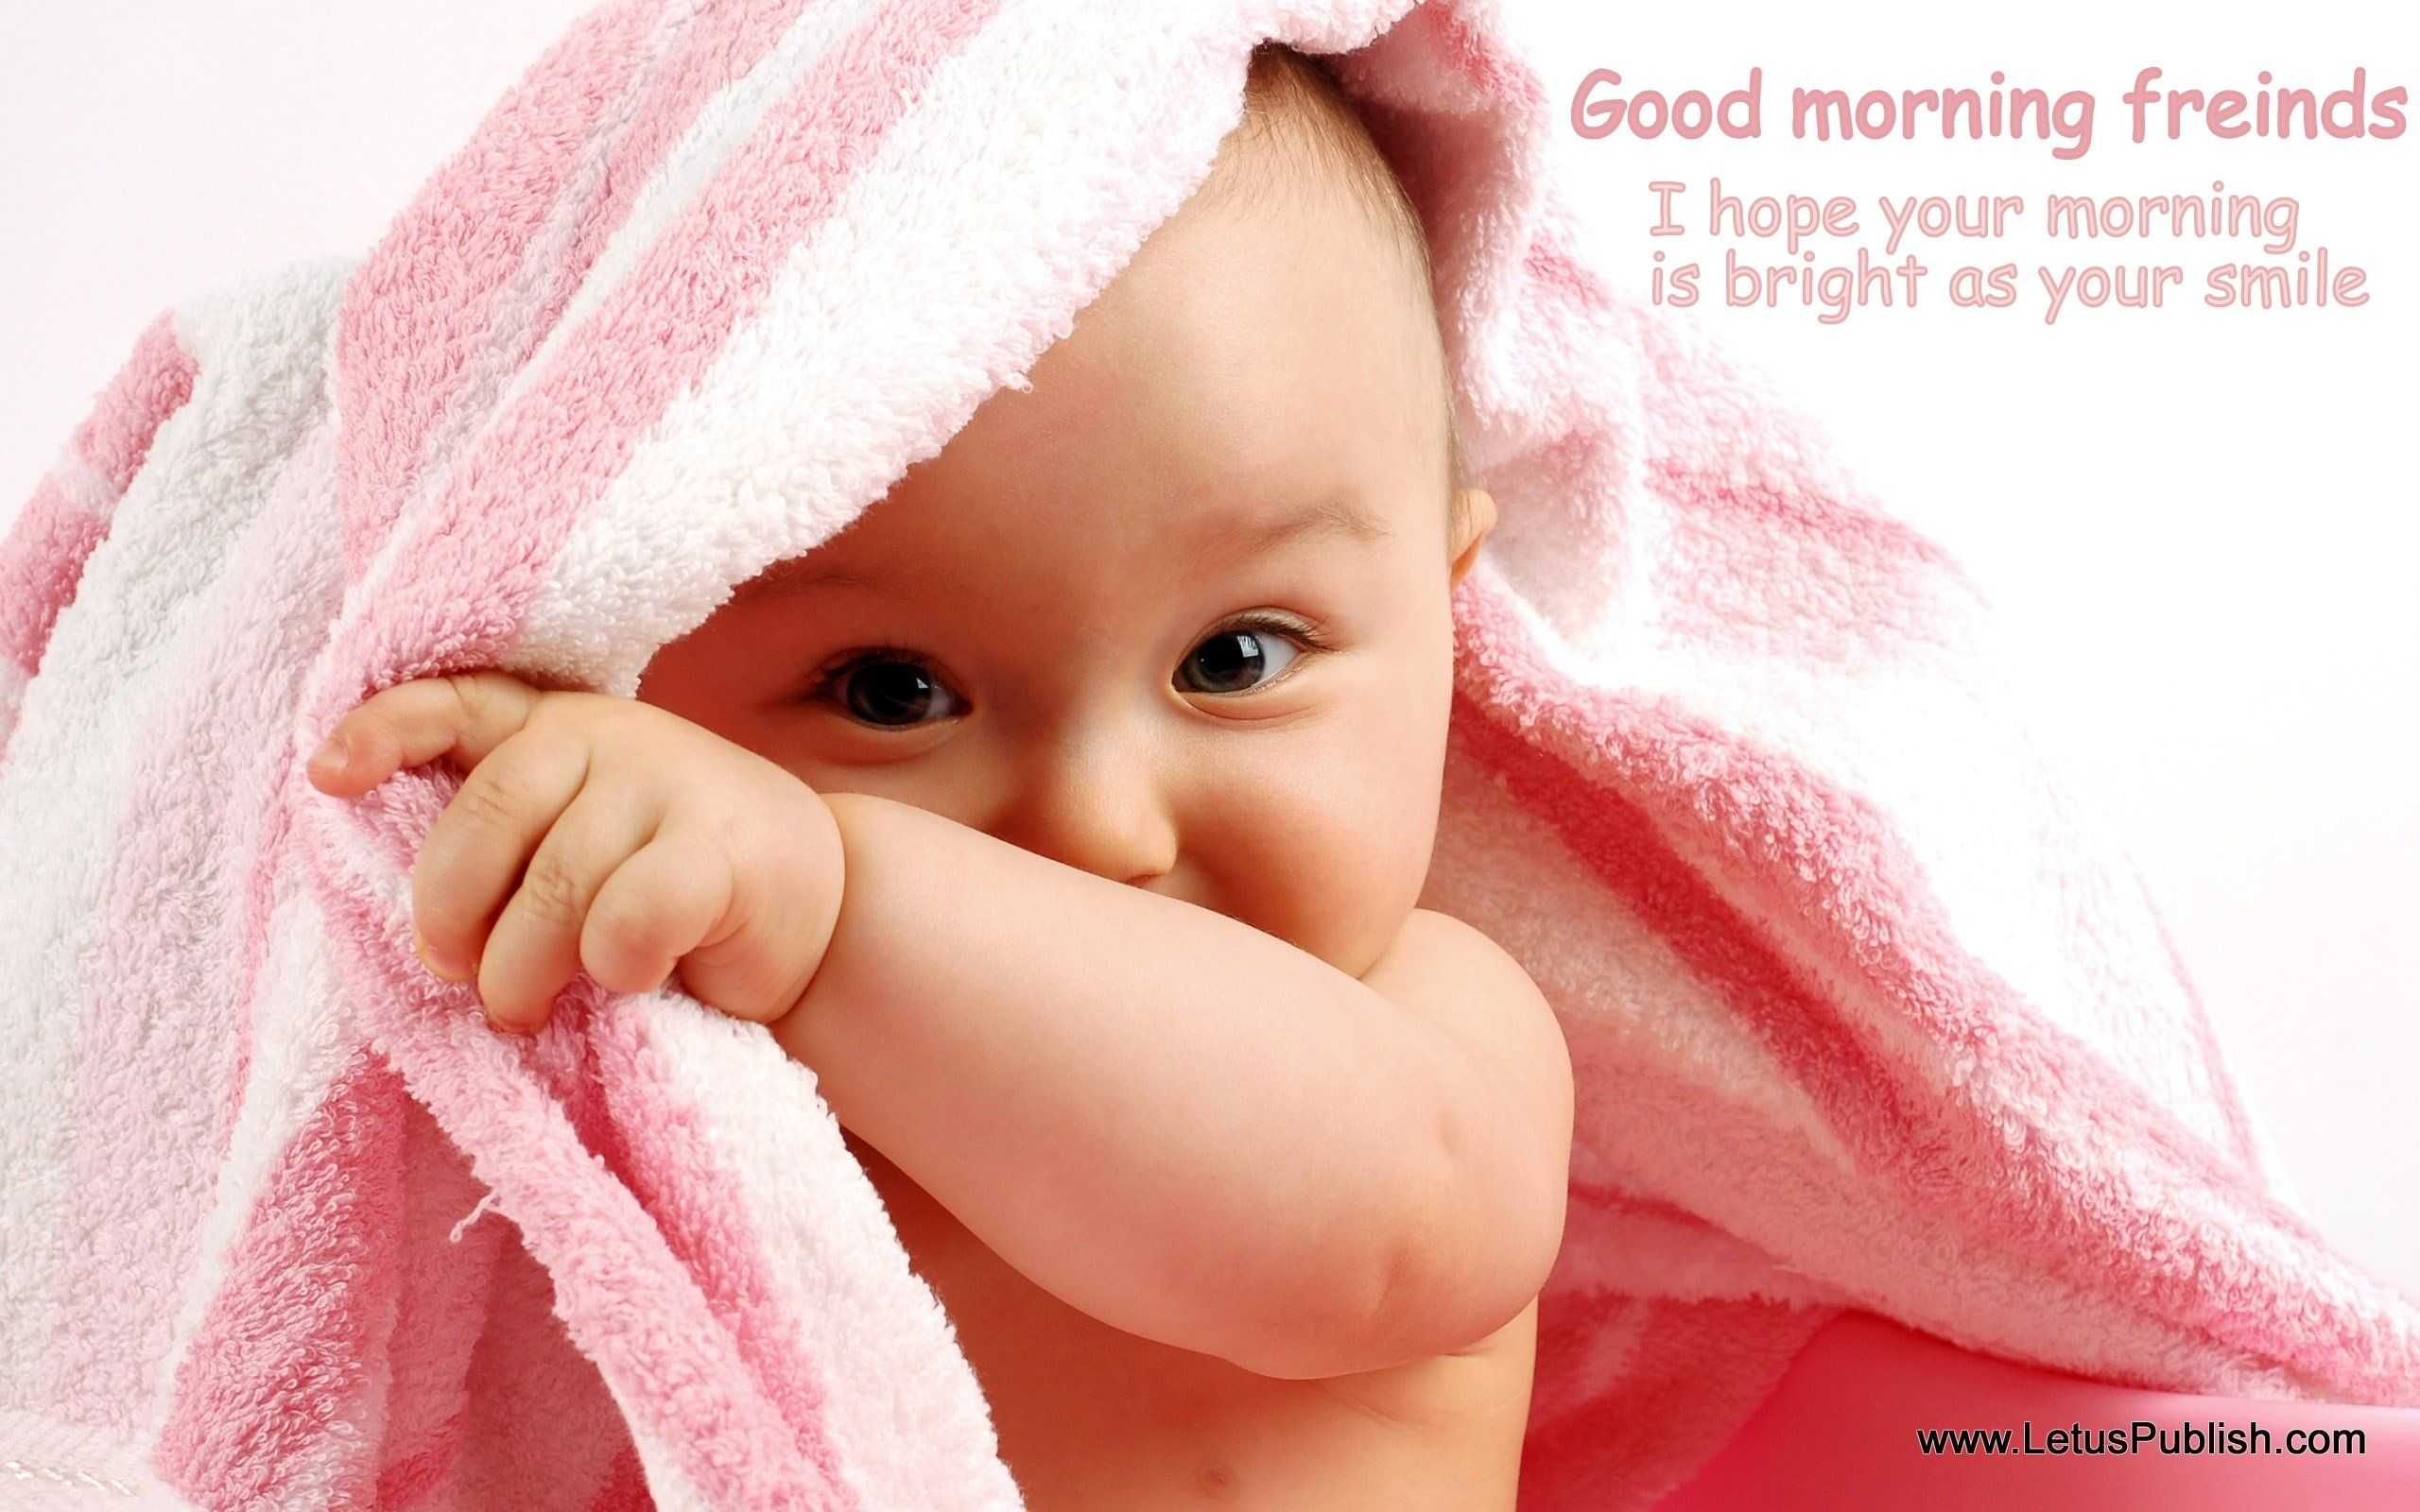 Good Morning Wallpapers Free Download Cute Baby Wallpaper Cute Baby Pictures Baby Wallpaper Hd